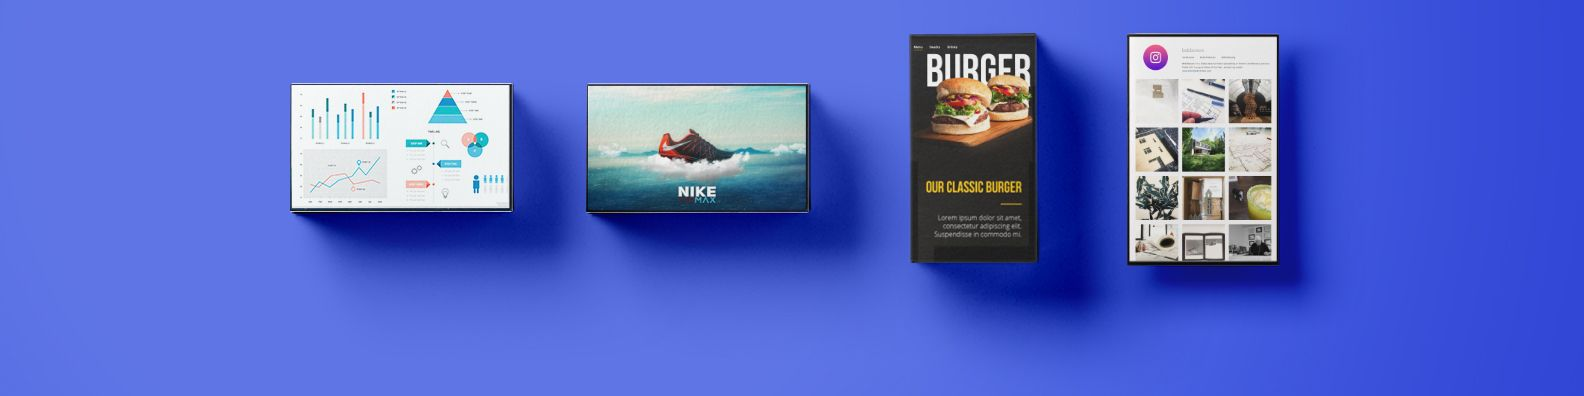 digital signage tips - why is it so popular